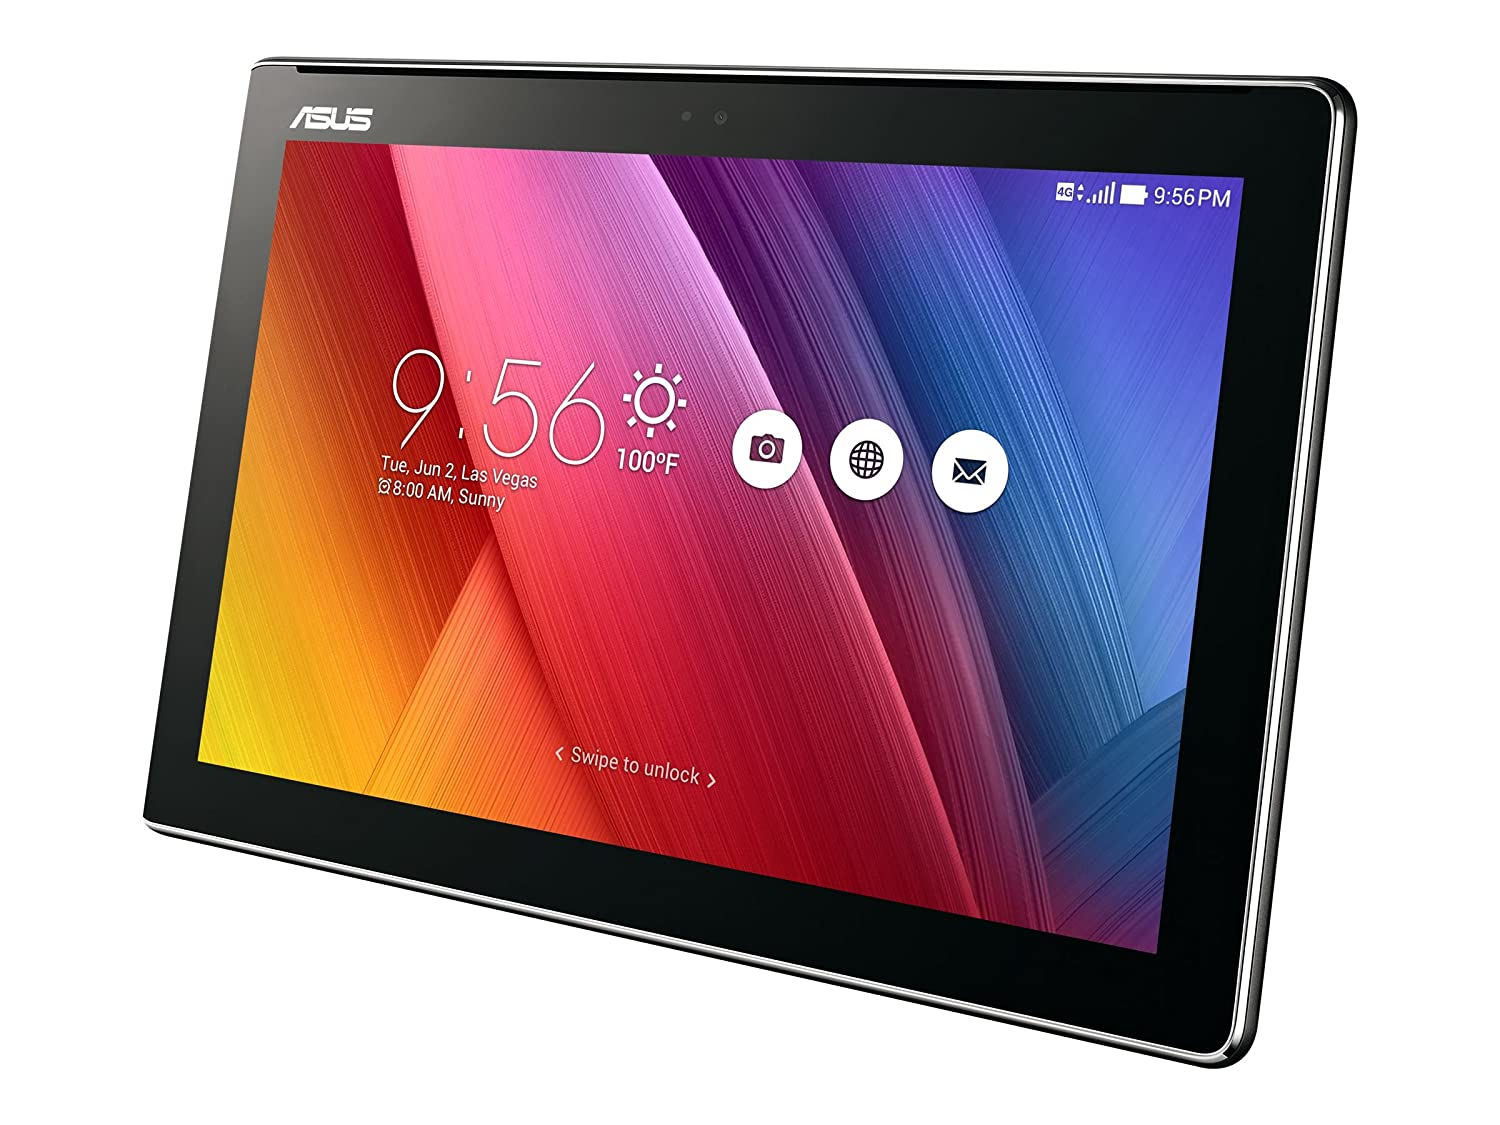 Amazon.com: ASUS ZenPad 10.1